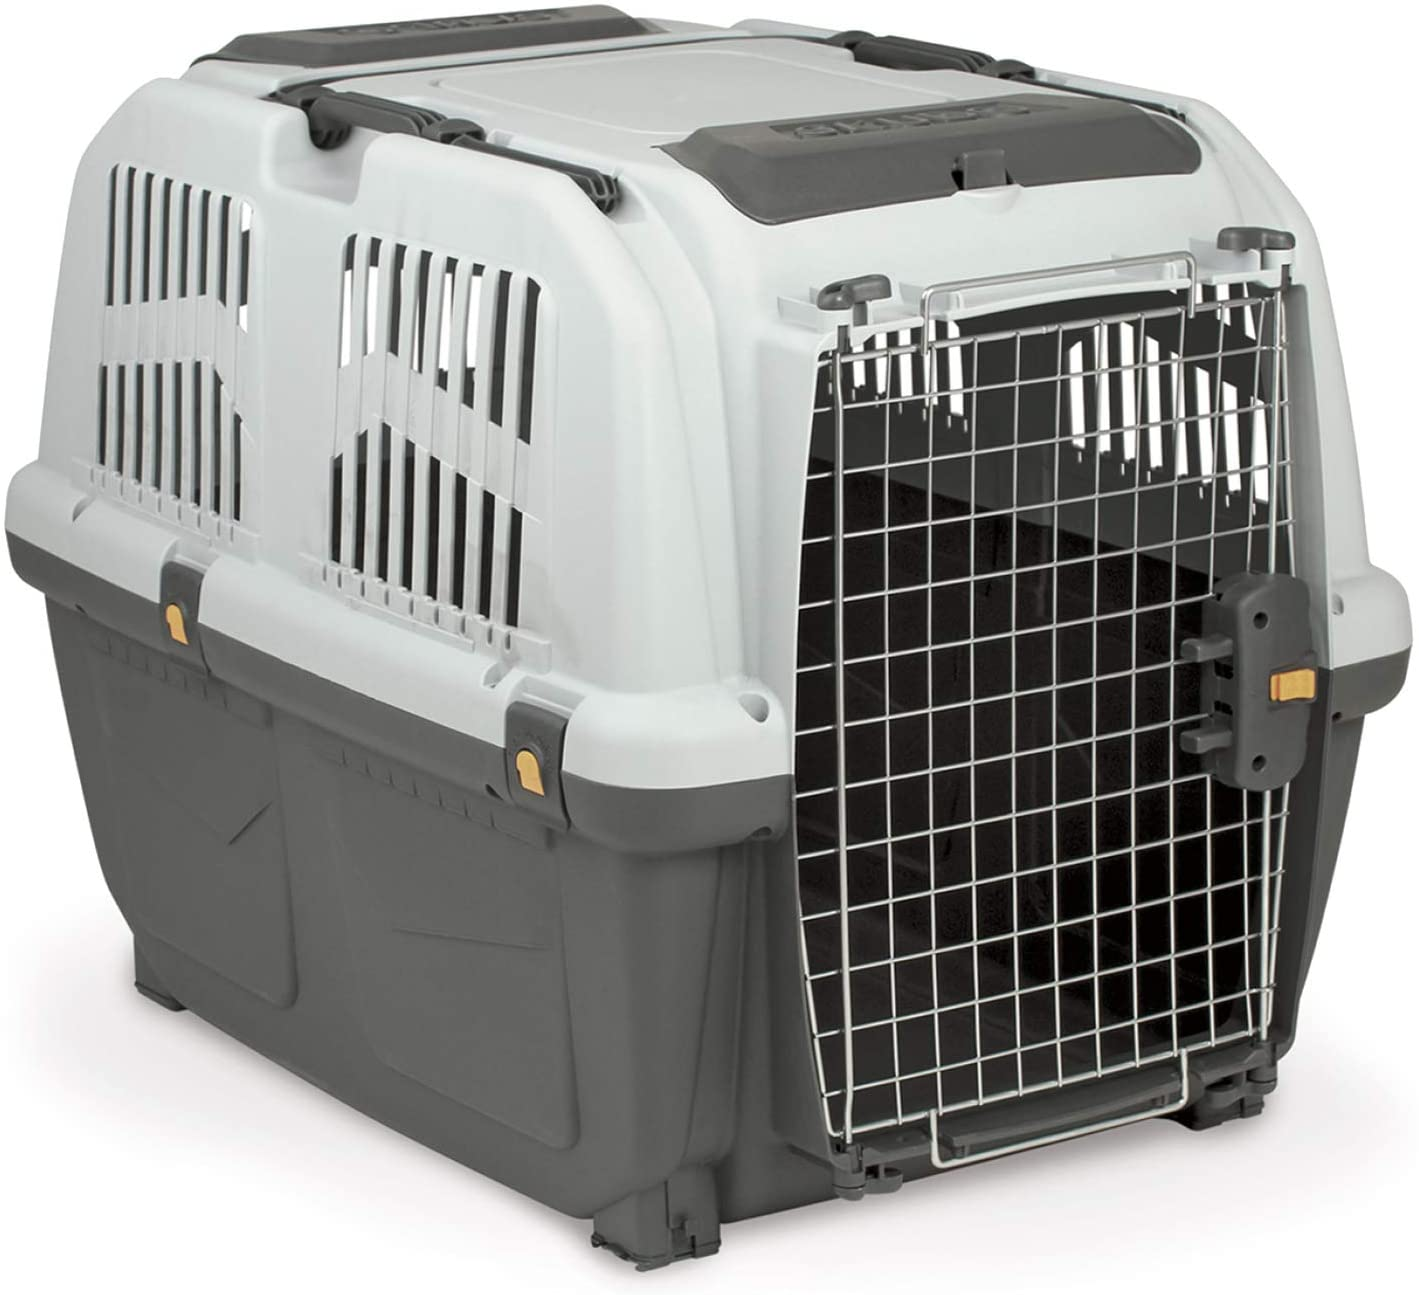 Nobby Reise Transport Dog Crate